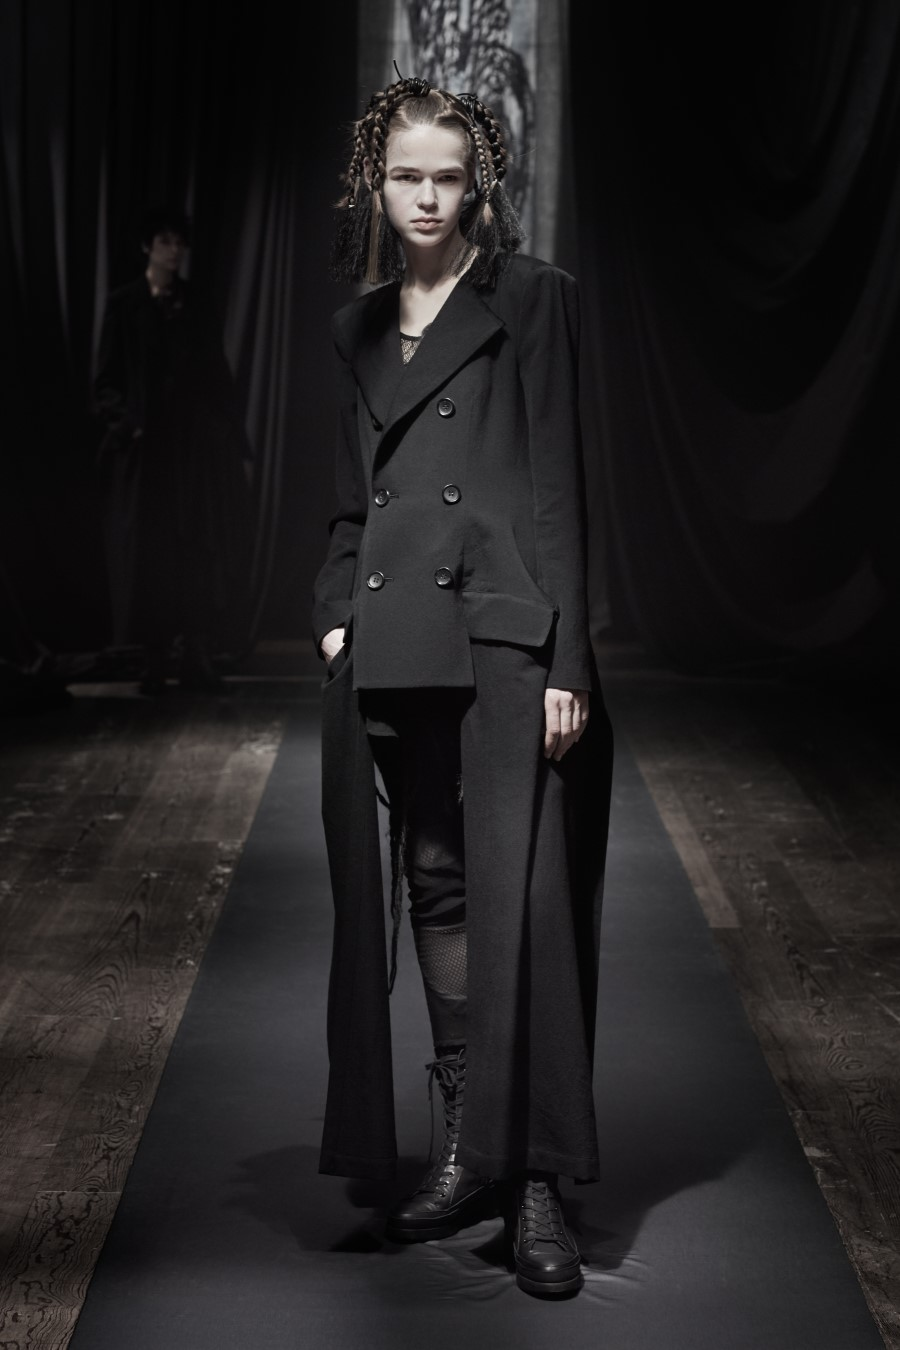 Yohji Yamamoto Fall Winter 2021 - Paris Fashion Week